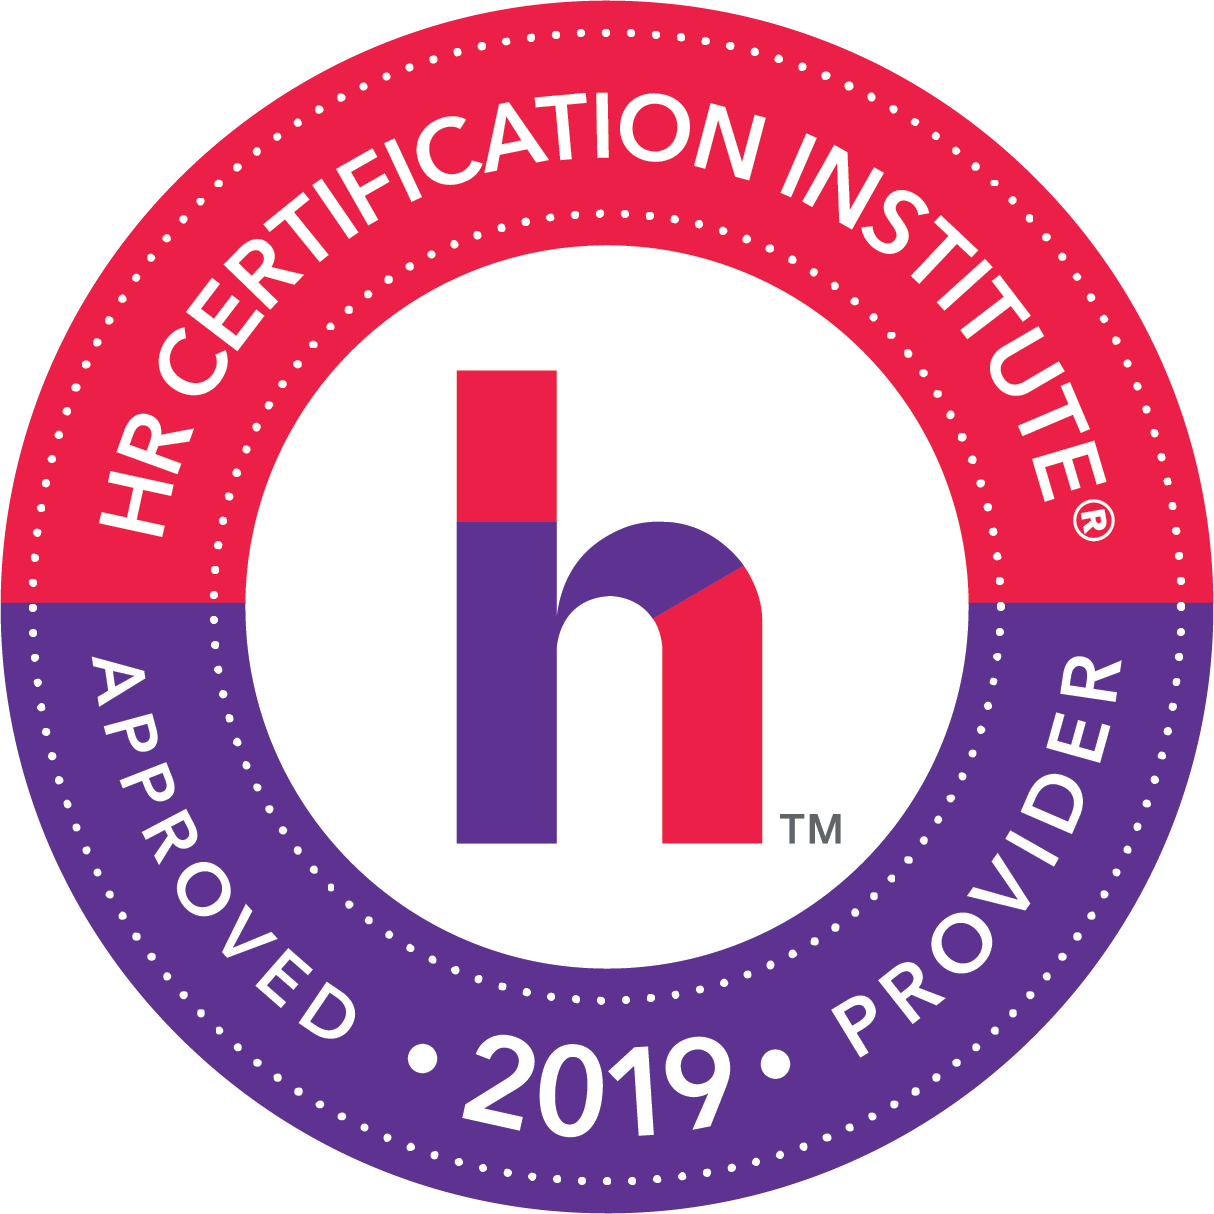 HR Certification Institute 2018 approved provider